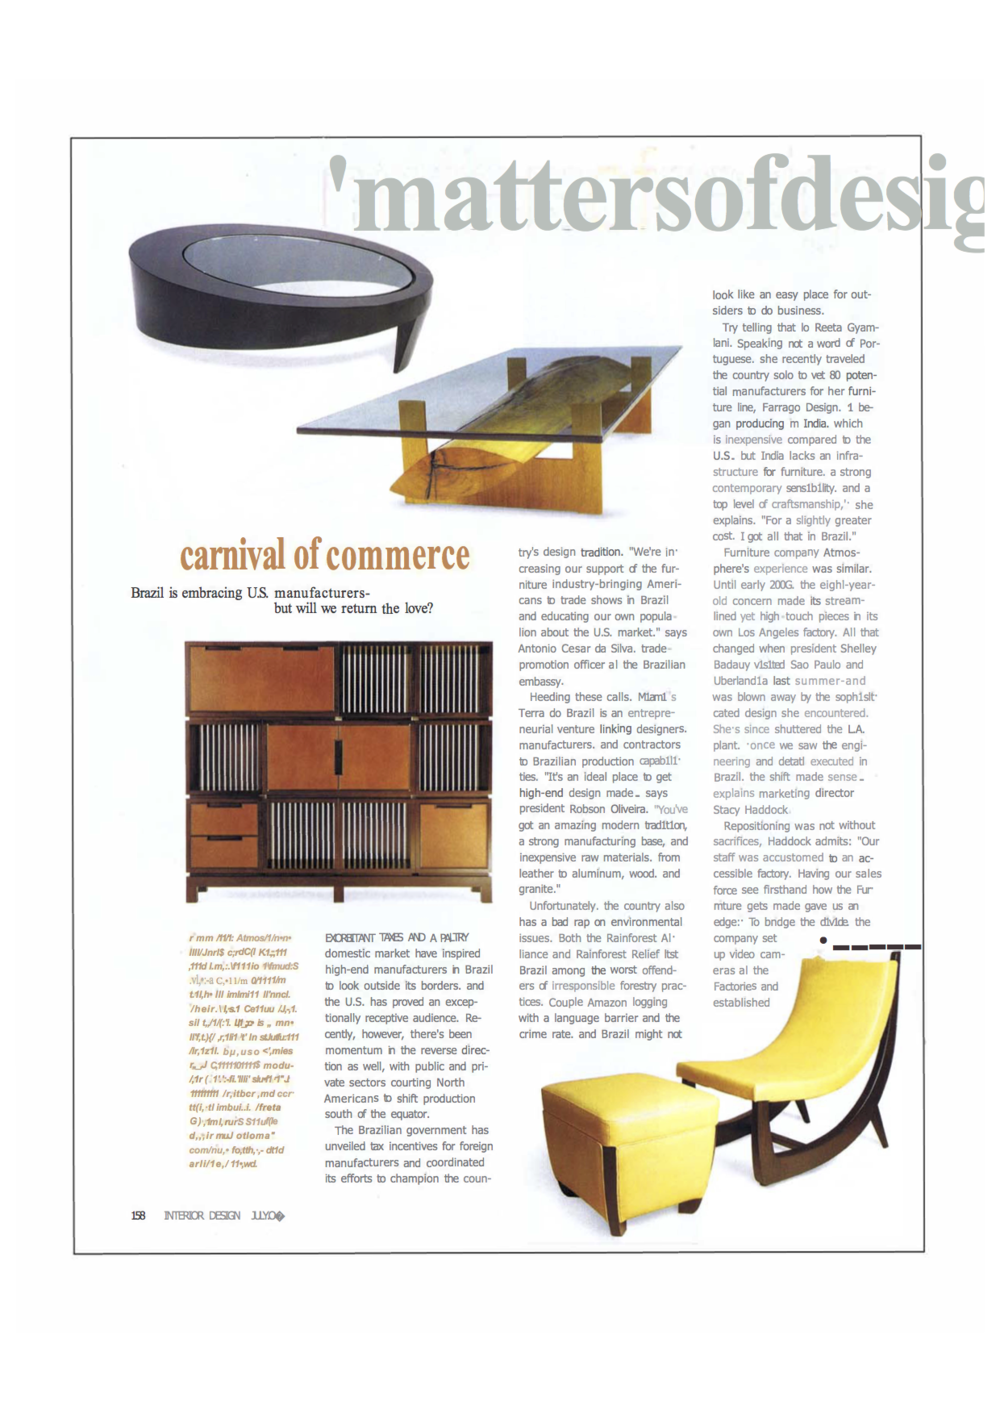 Interior Design - matters of Design -  Try telling that to Reeta Gyamlani. Speaking not a word of Portuguese she recently traveled the country solo to vet 80 potential manufacturers for her furniture line, Farrago Design. I began producing in India. which is inexpensive compared to the U.S. but India lacks an infrastructure for furniture, a strong contemporary sensibility and a top level of craftsmanship', she explains.